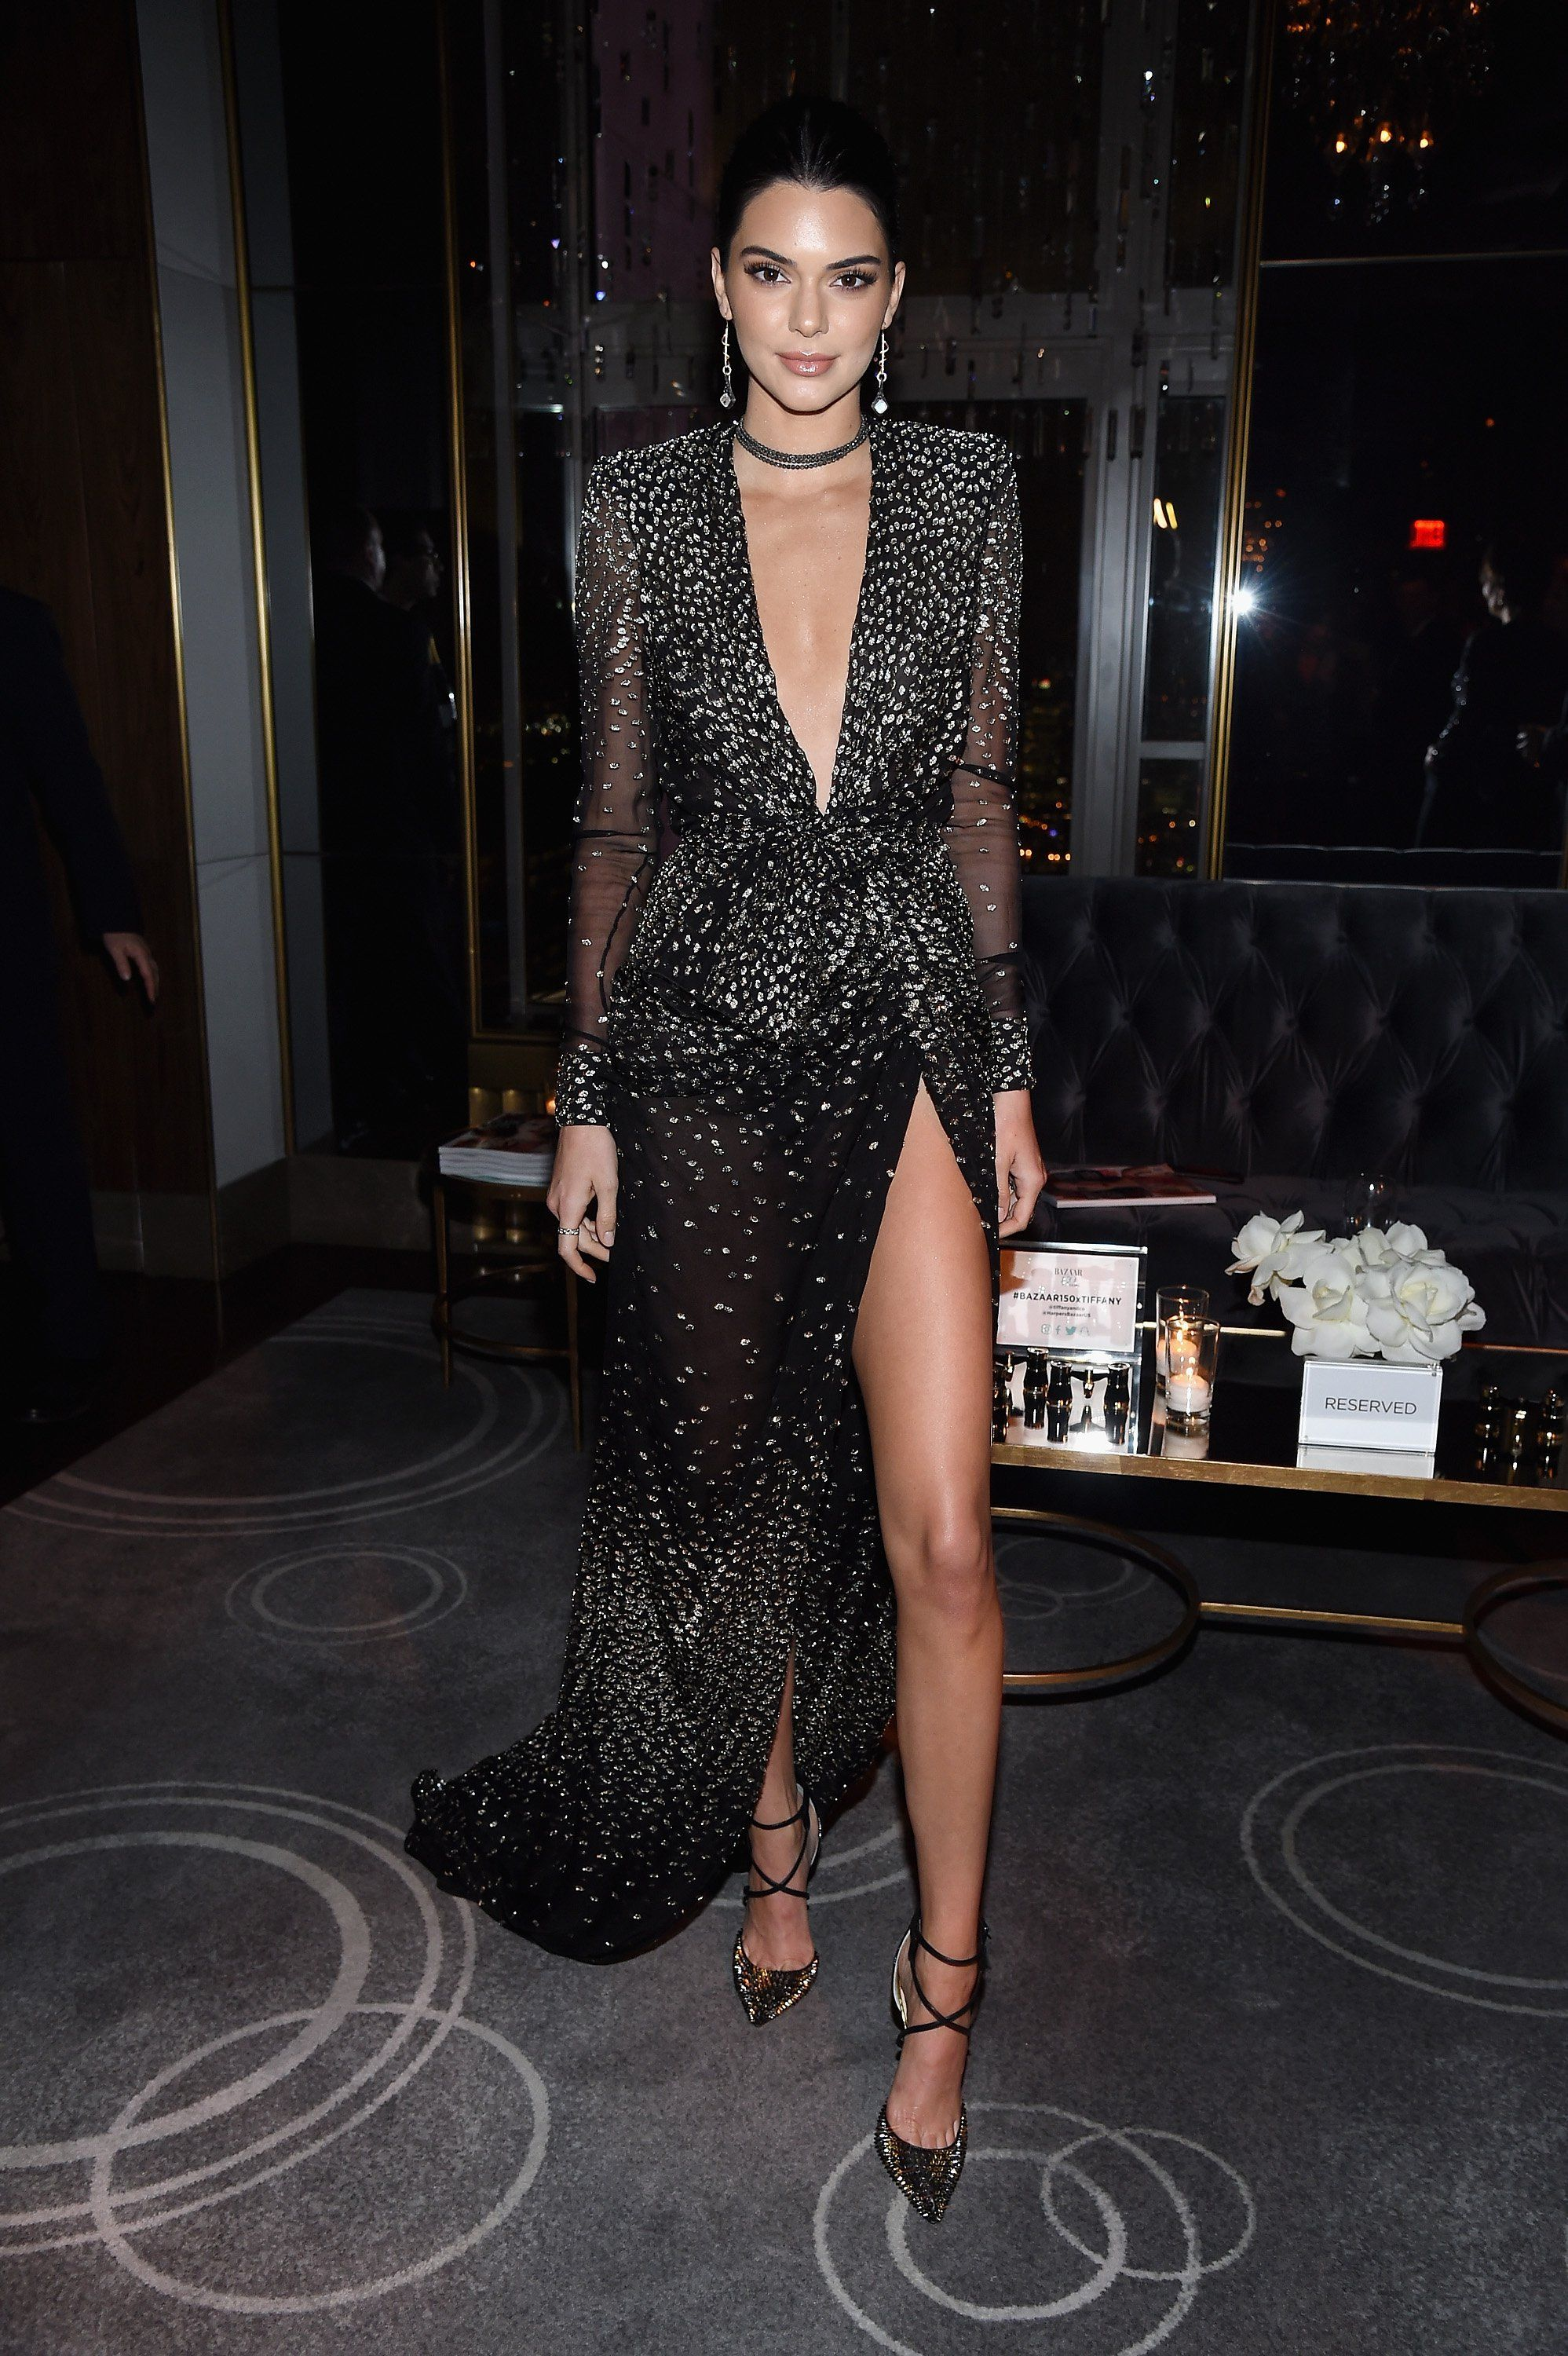 Braless Pics of Kendall Jenner. 2018-2019 celebrityes photos leaks! new foto